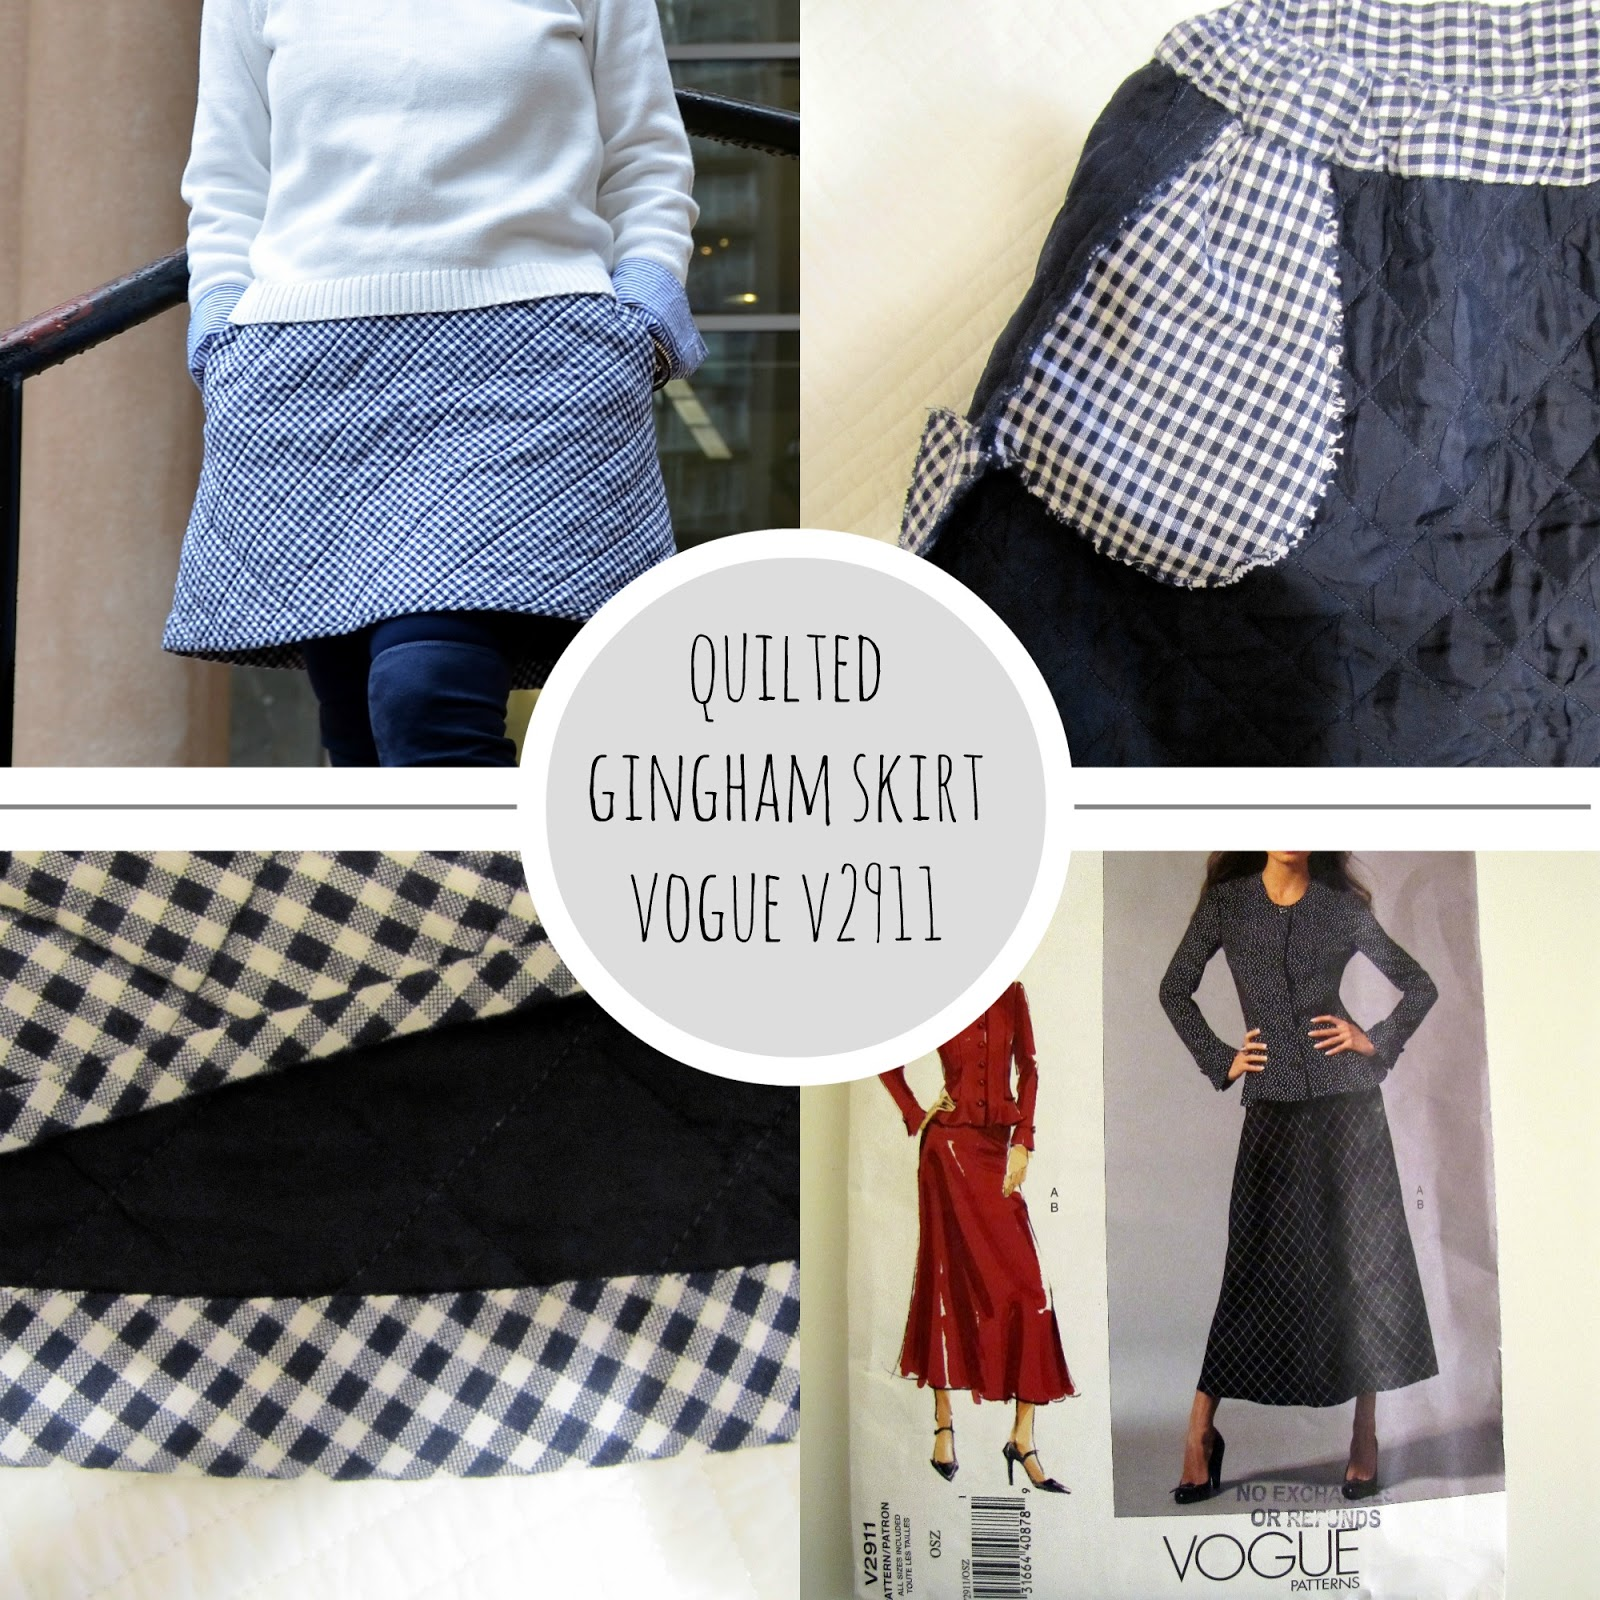 A-Colourful-Canvas, Quilted-Gingham-Skirt, Vogue-V2911